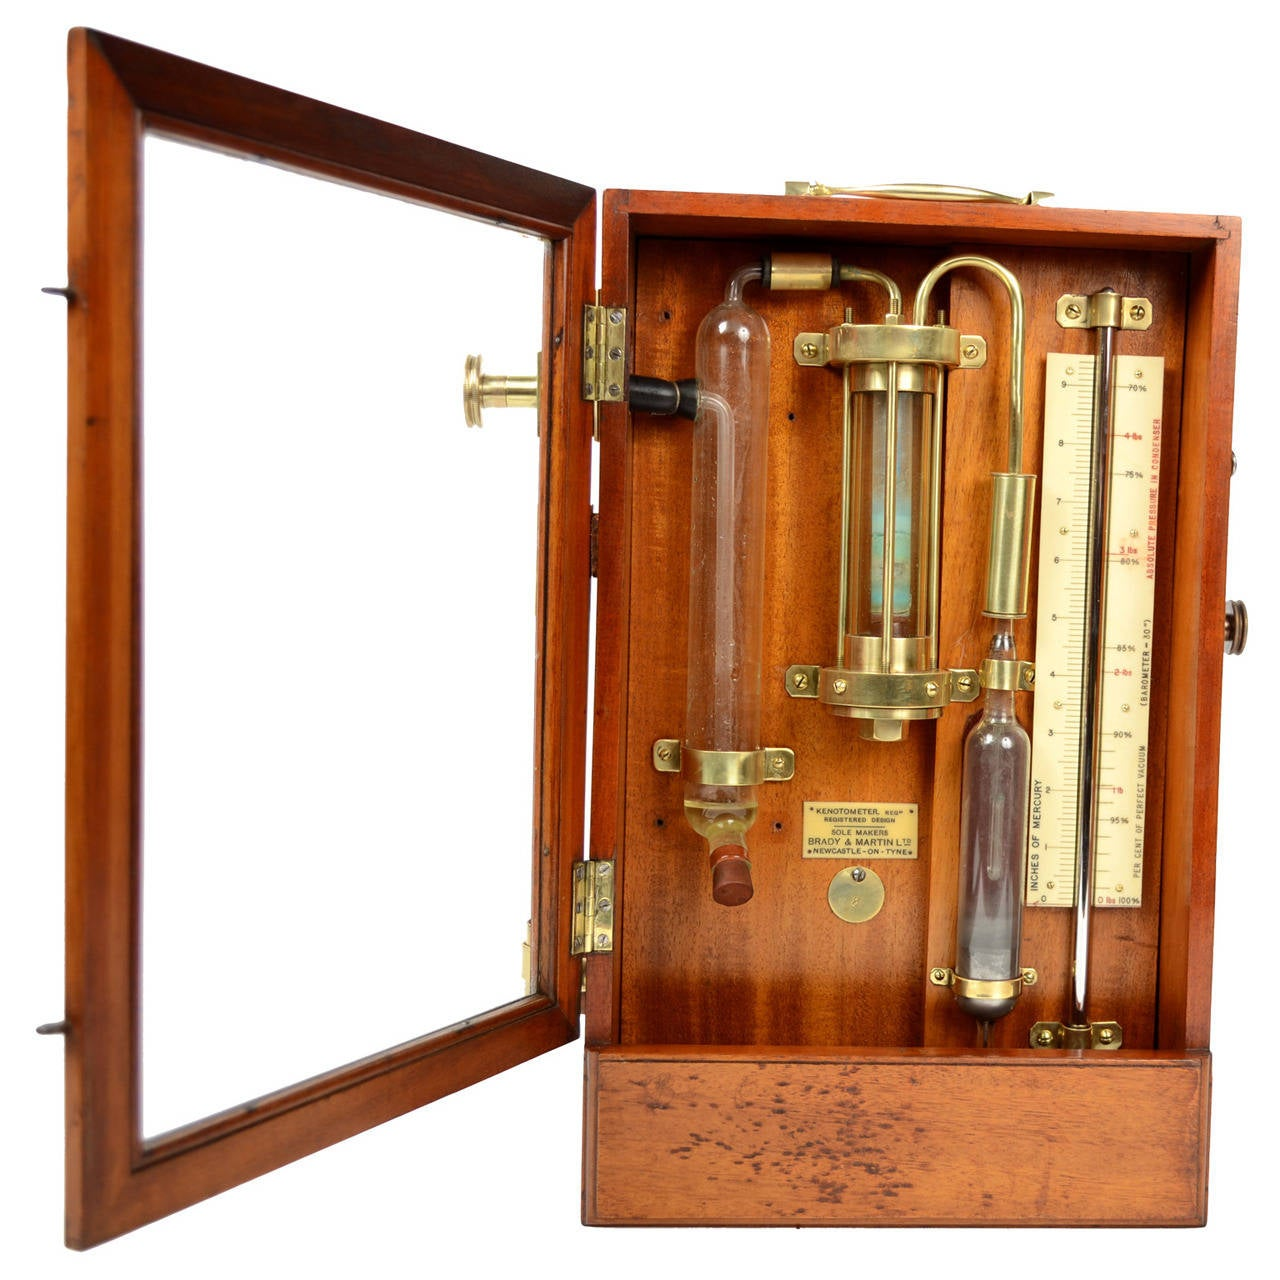 Kenotometer Signed Brady And Martin Ltd Newcastle On Tyne Early 1900 For Sale At 1stdibs